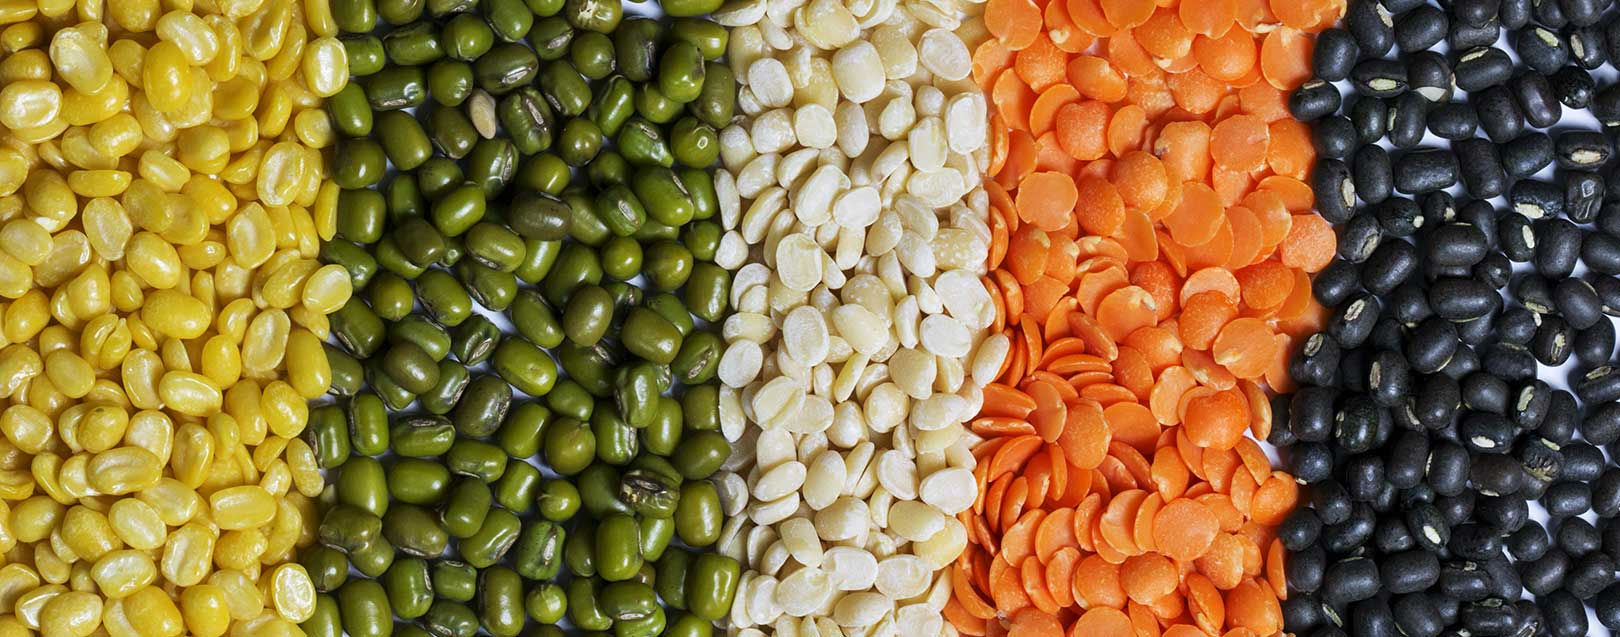 Govt. hikes MSP for pulses to boost production